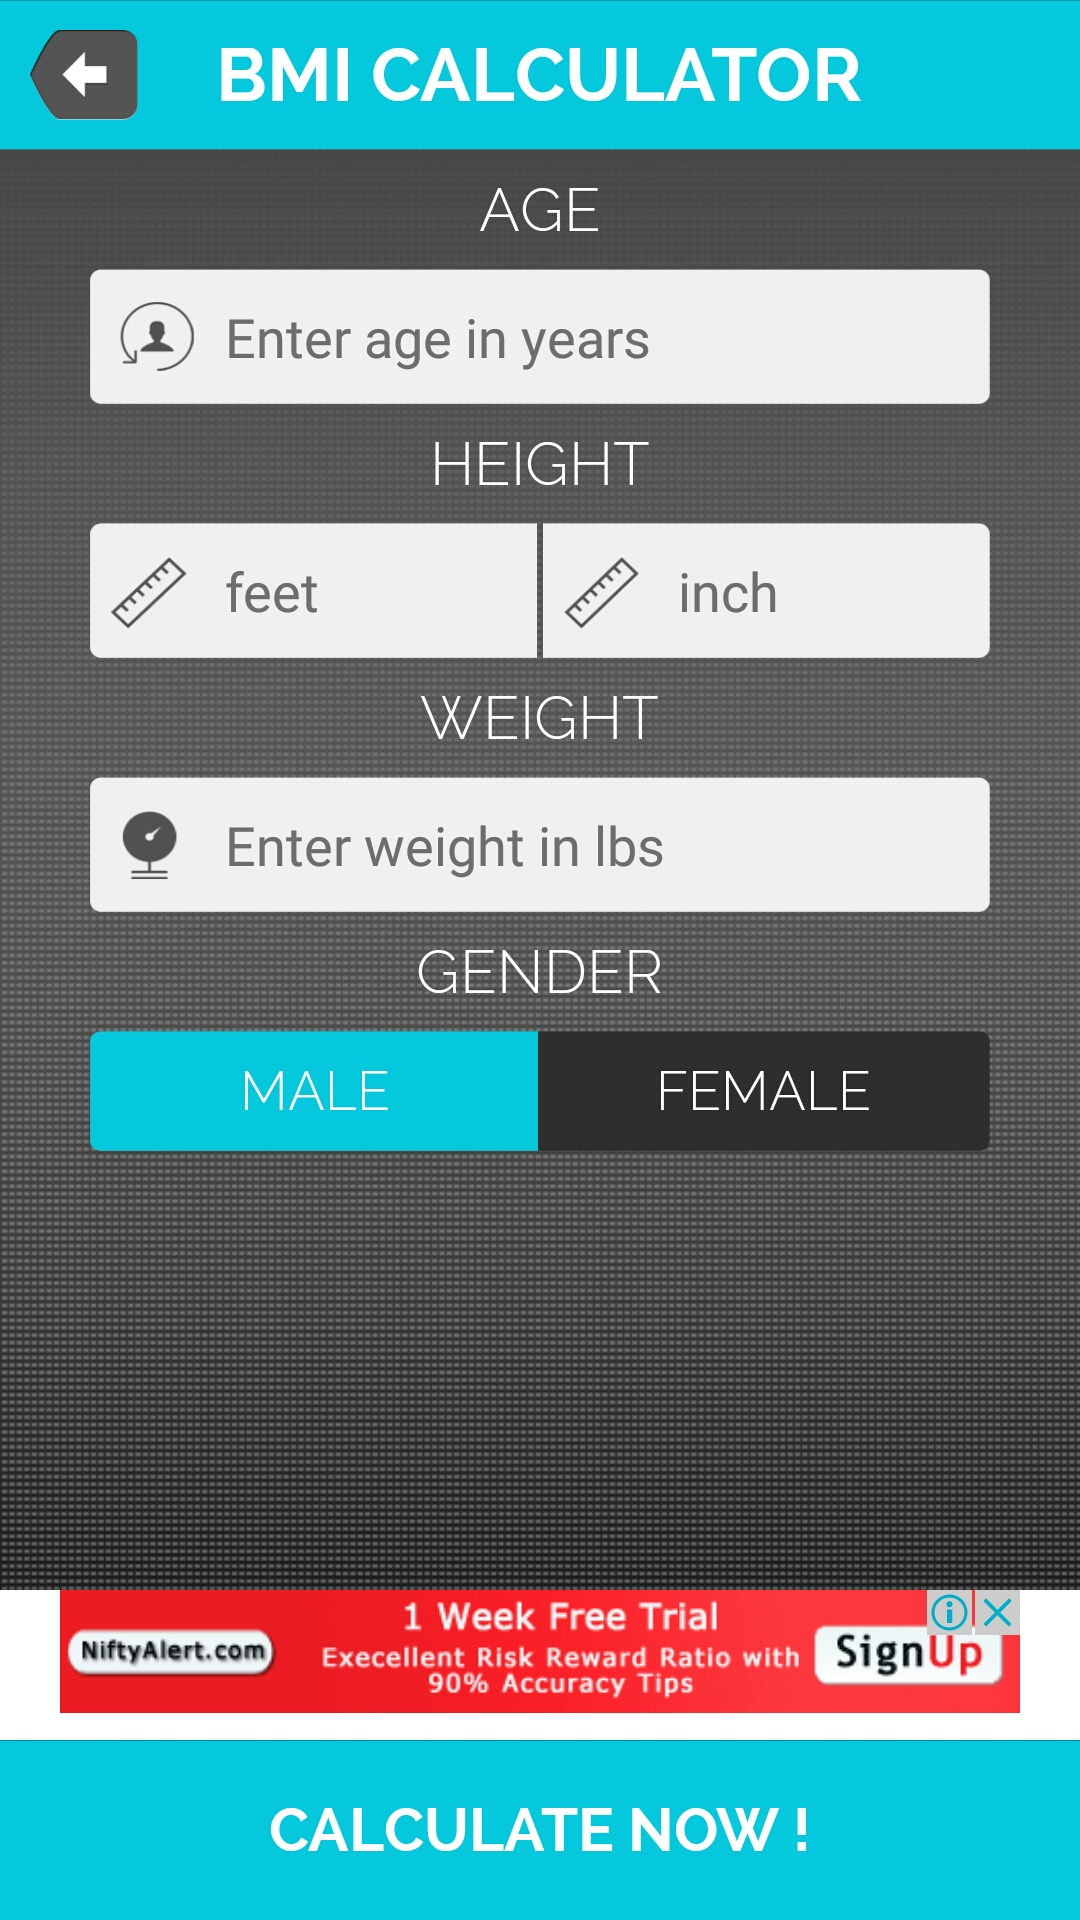 Bmi calculator for android full application with psd by image preivew1eg nvjuhfo Image collections